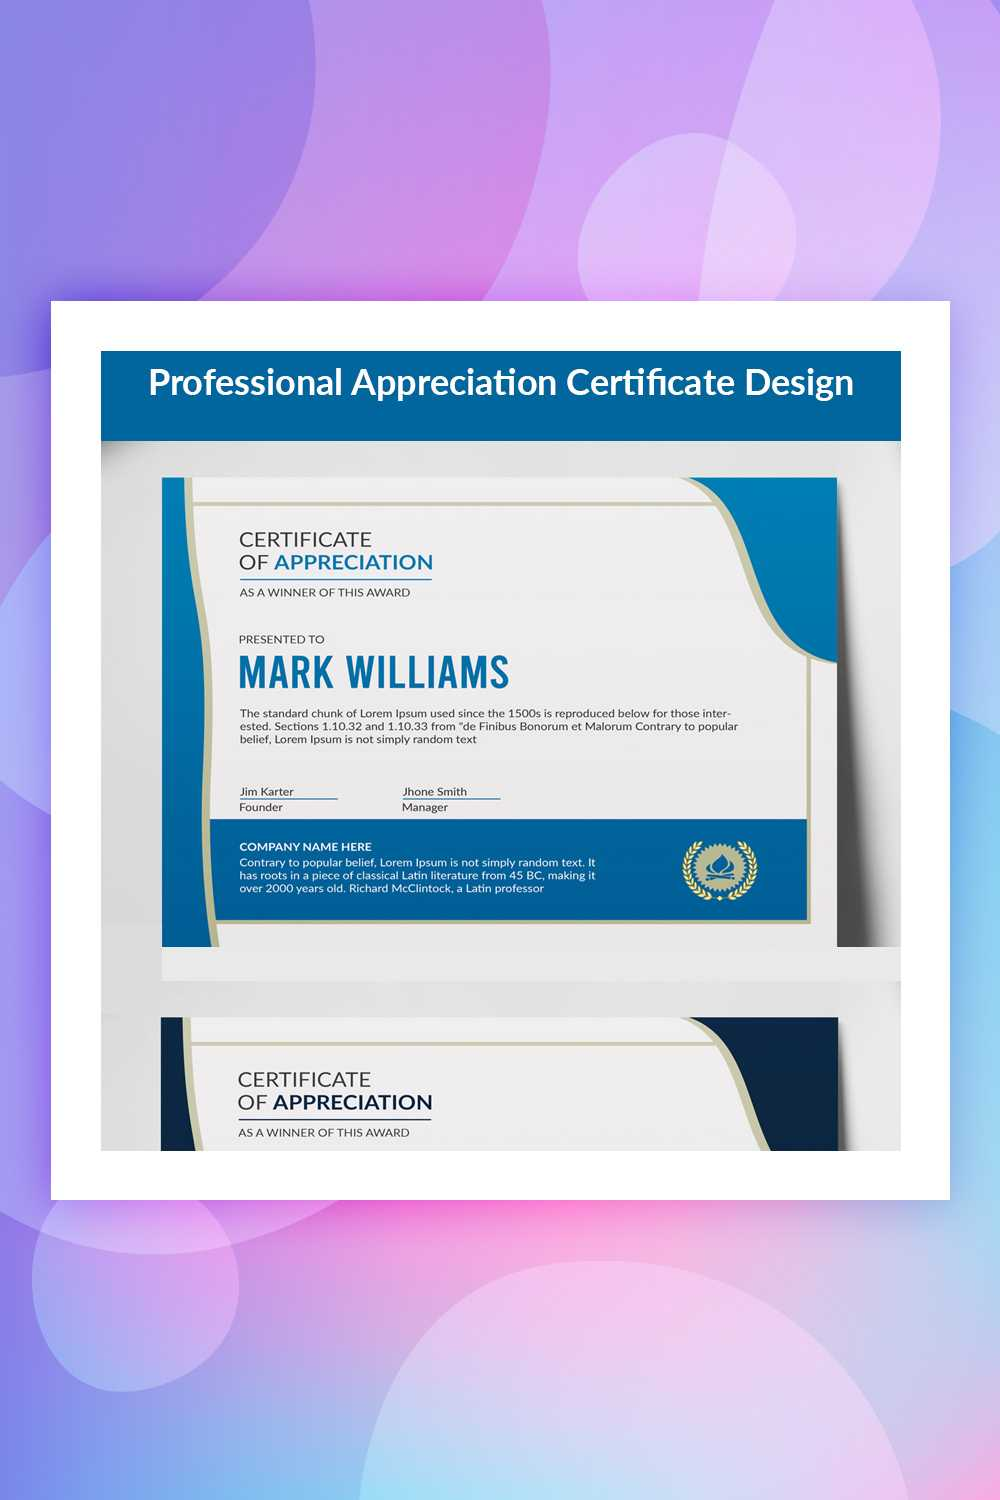 28 Attention Grabbing Certificate Templates - Colorlib With Regard To No Certificate Templates Could Be Found